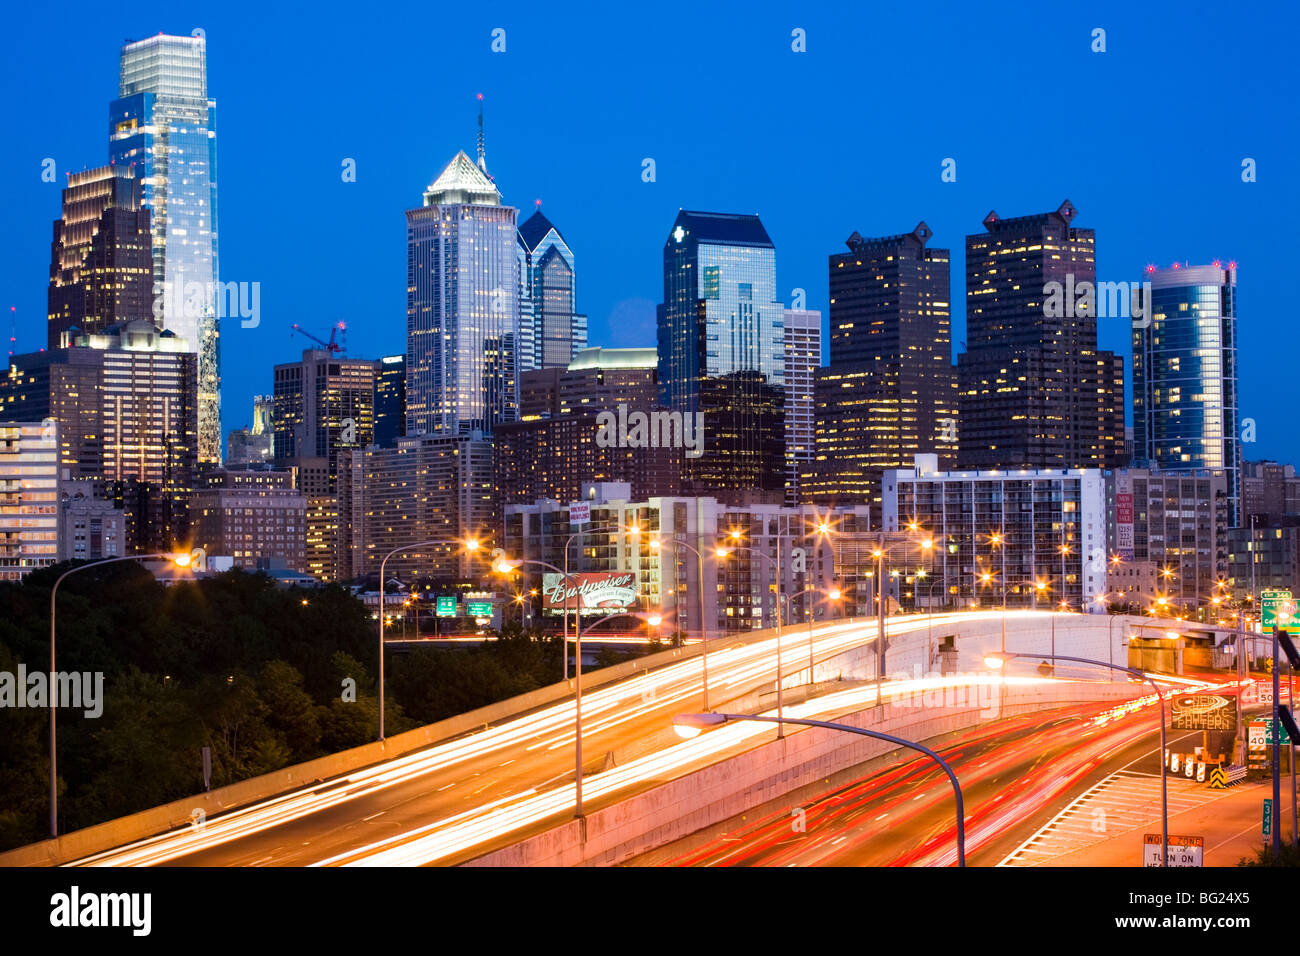 Dusk skyline of Philadelphia, Pennsylvania - Stock Image